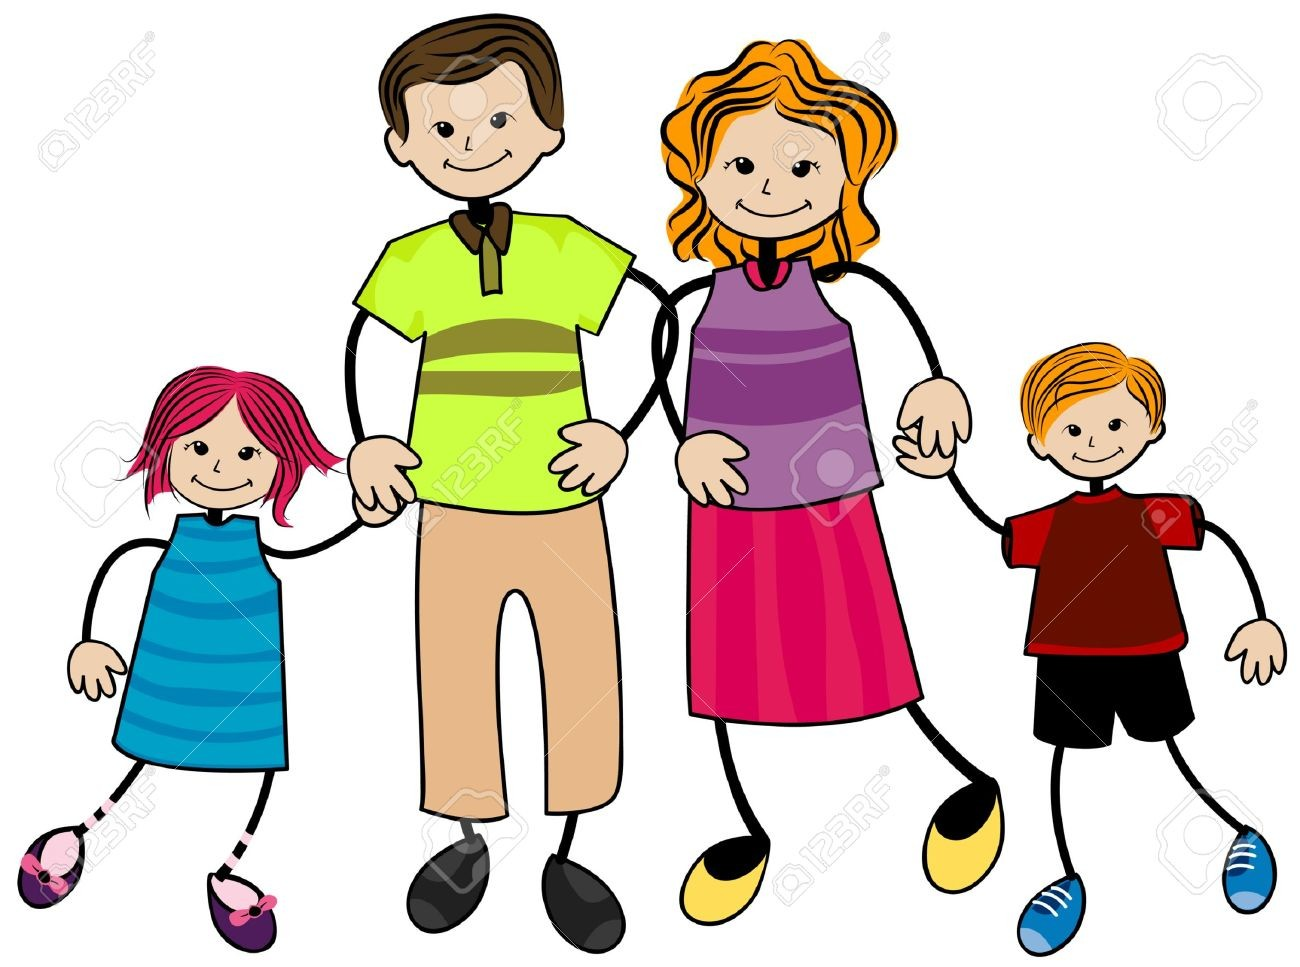 1300x967 Family Members Happy Together In One Shot Royalty Free Cliparts